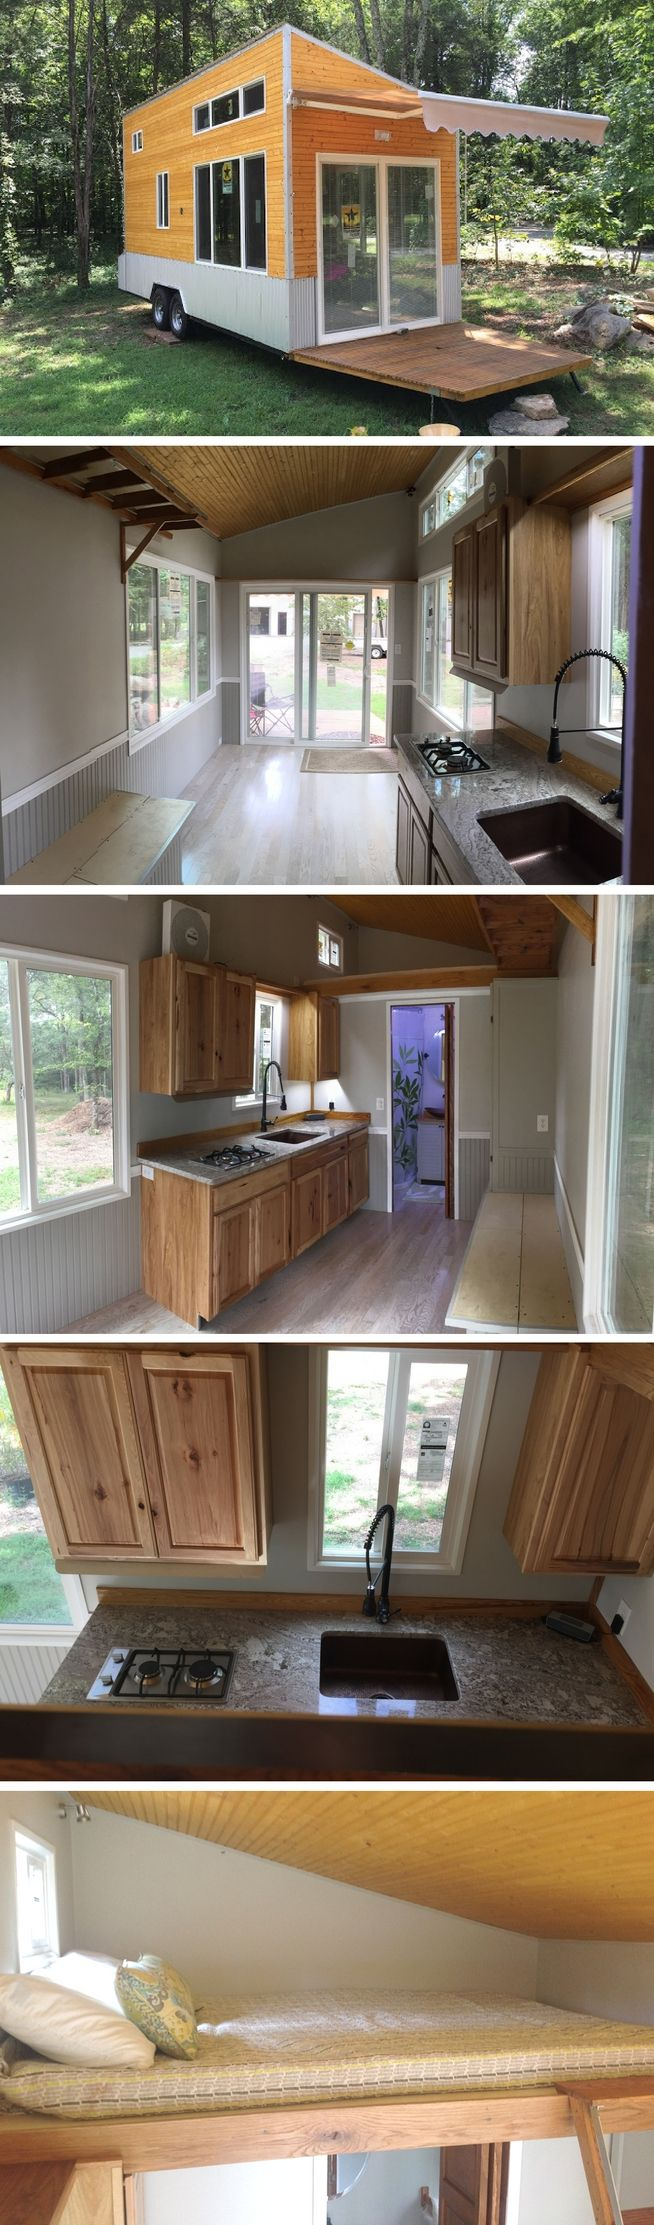 A 200 sq ft tiny house that's off grid compatible! Currently for sale for $38K!